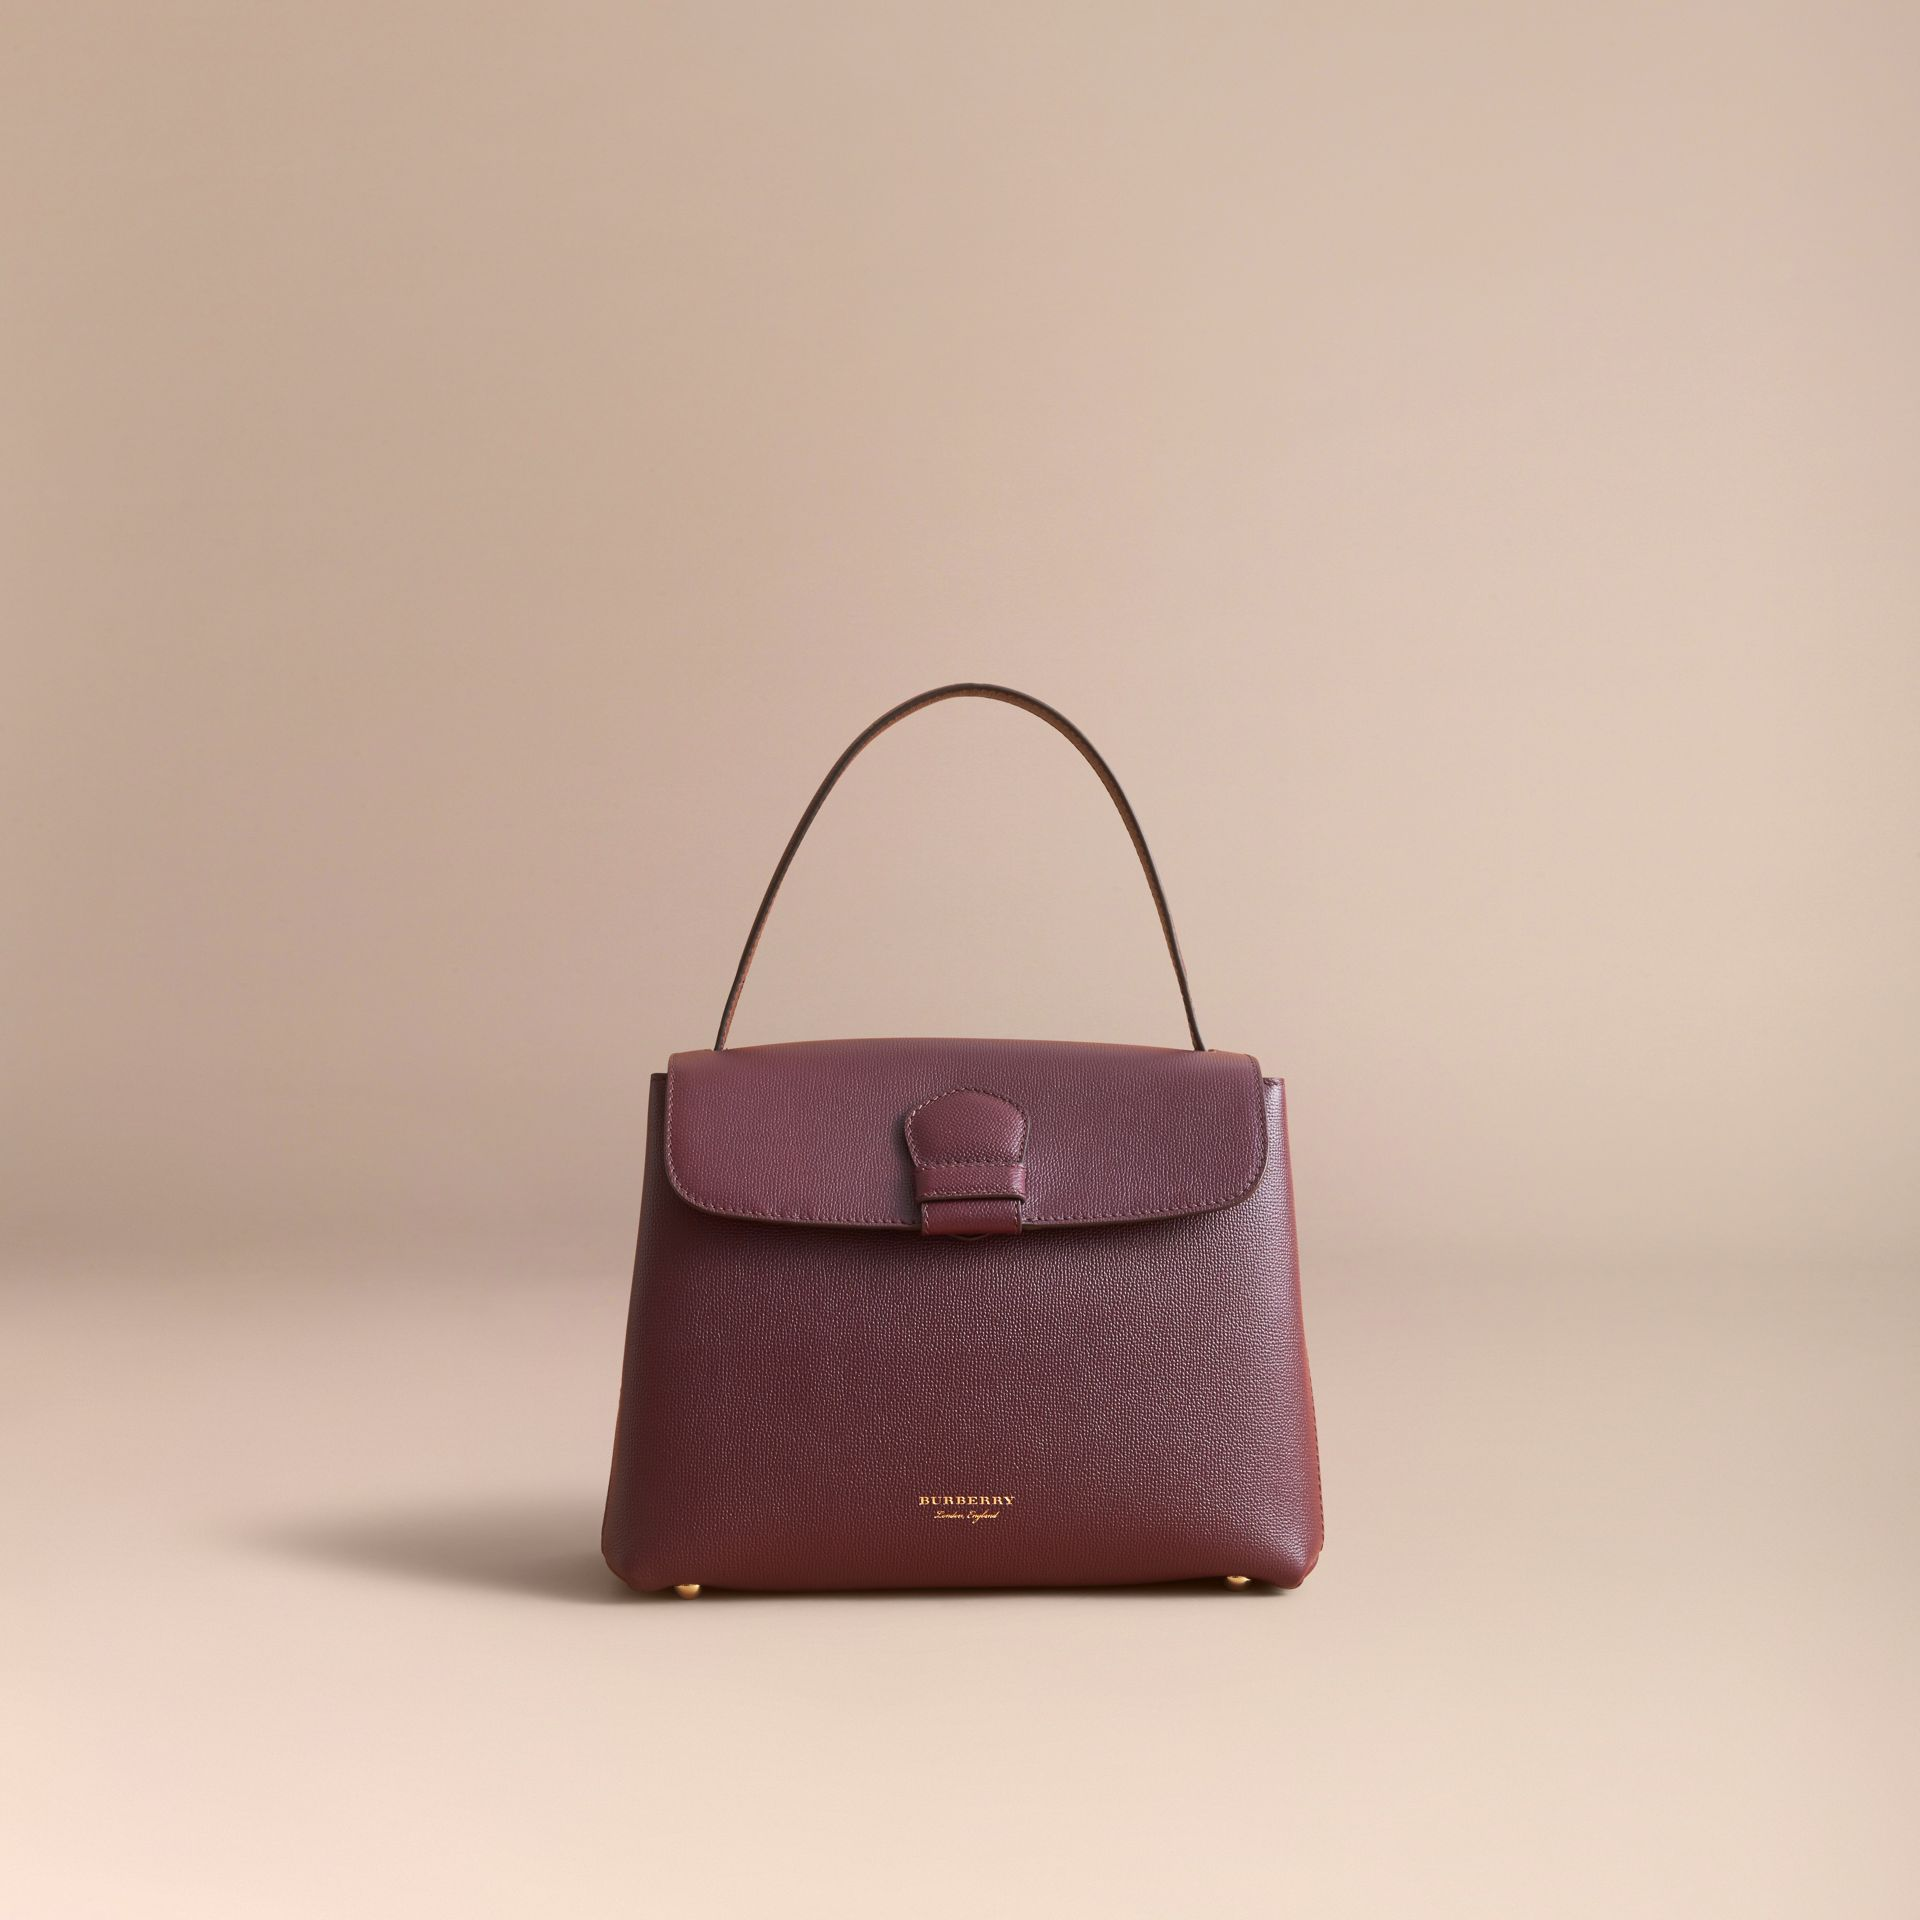 Medium Grainy Leather and House Check Tote Bag in Mahogany Red - Women | Burberry Hong Kong - gallery image 7